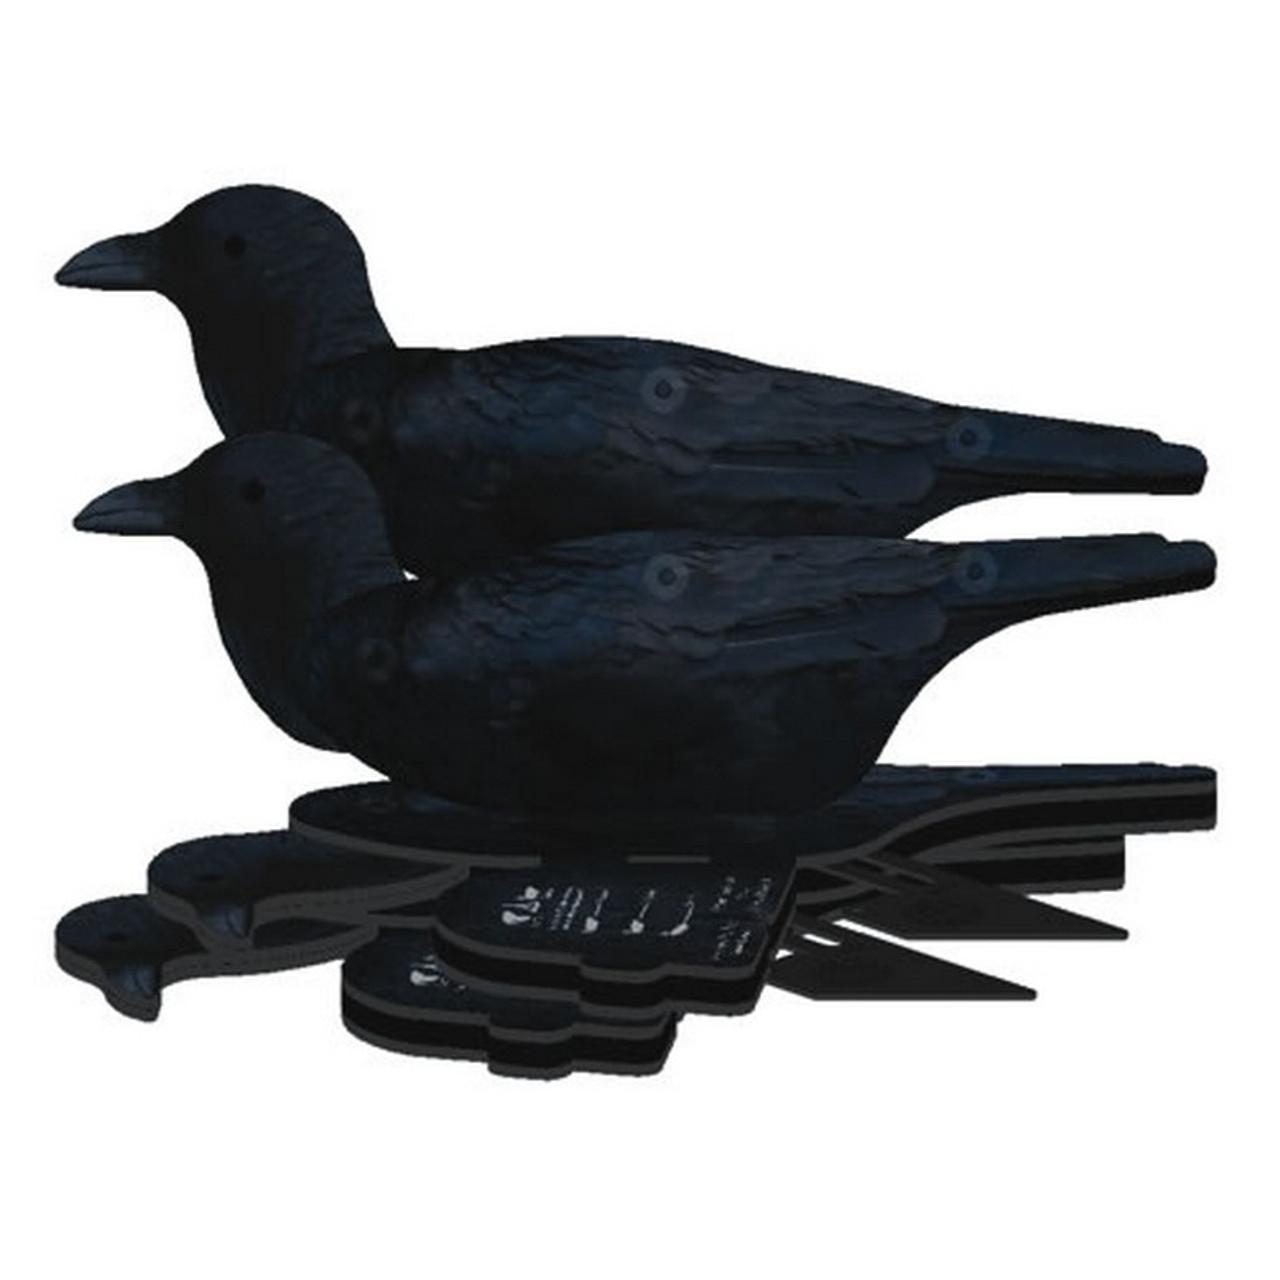 Best price for FUD Crow Decoy 6 Pack